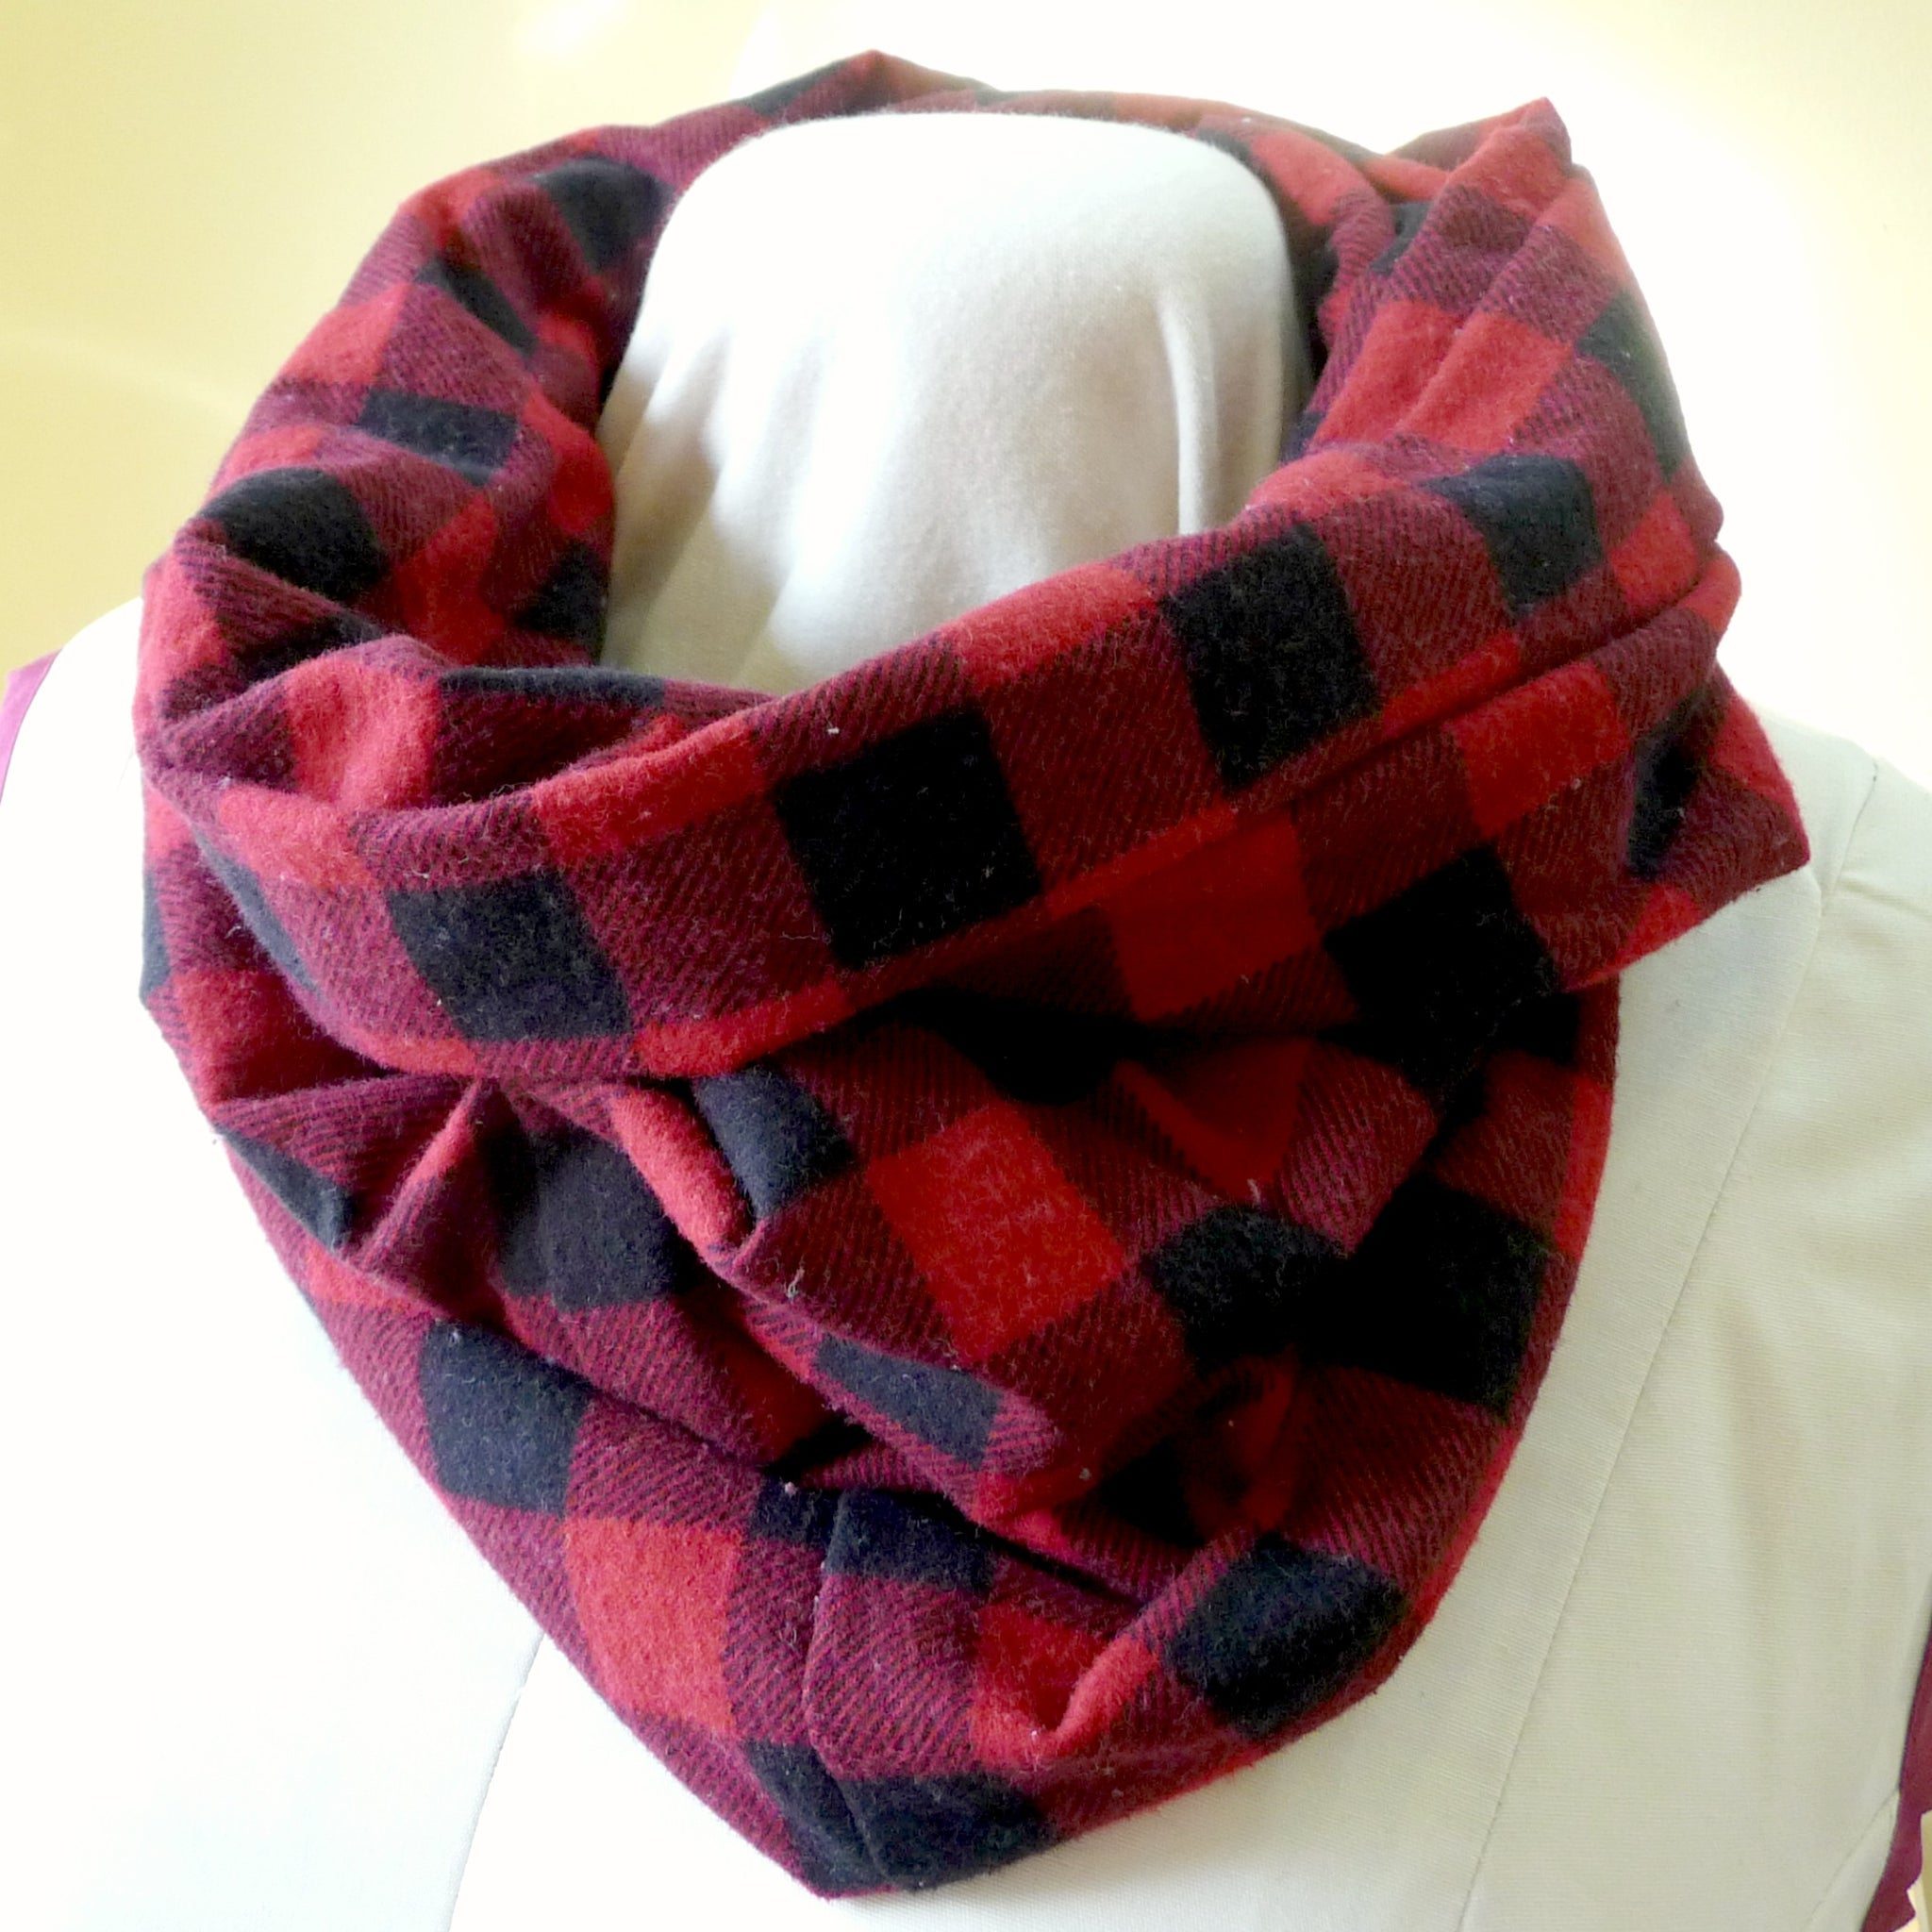 Red and Black Buffalo Plaid Infinty Scarf with pocket